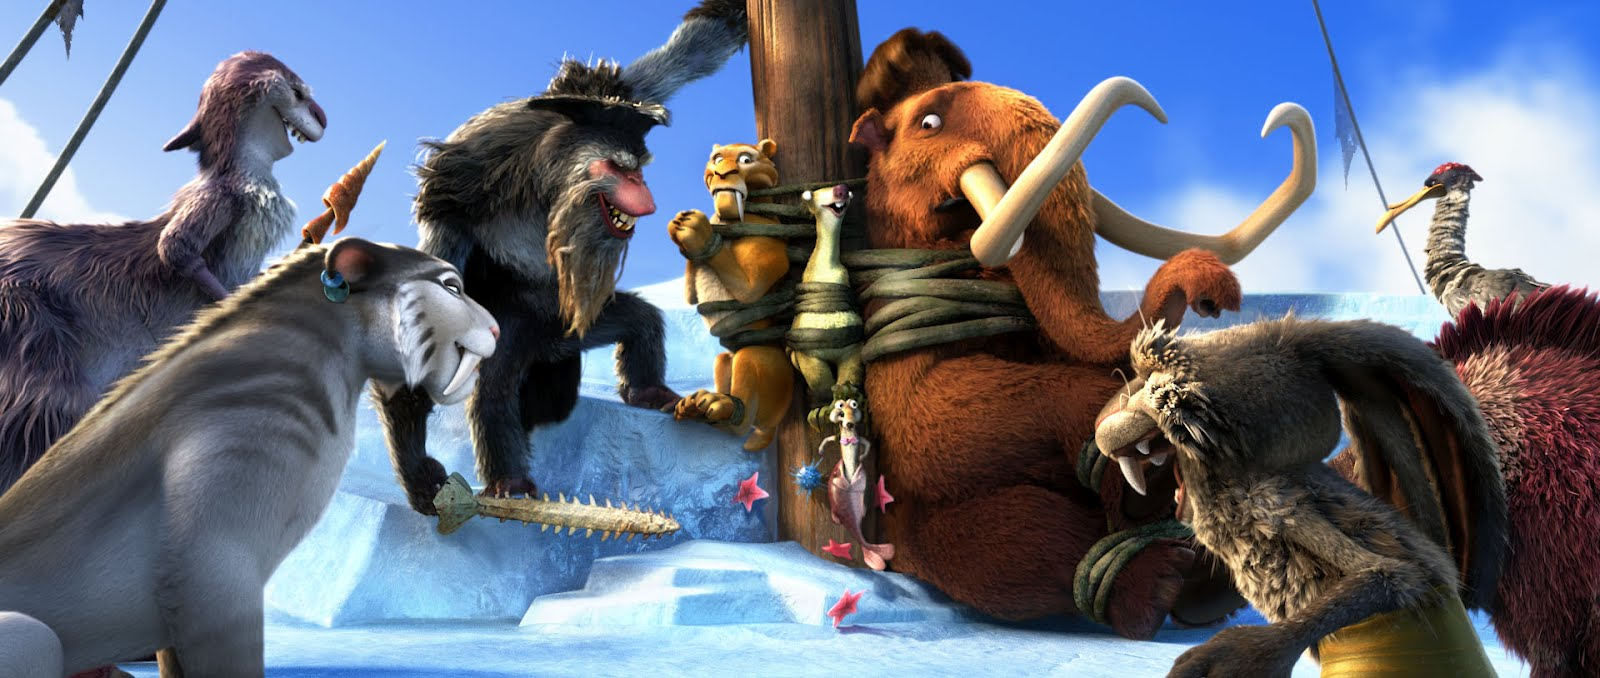 ice age 4: continental drift features new and returning characters